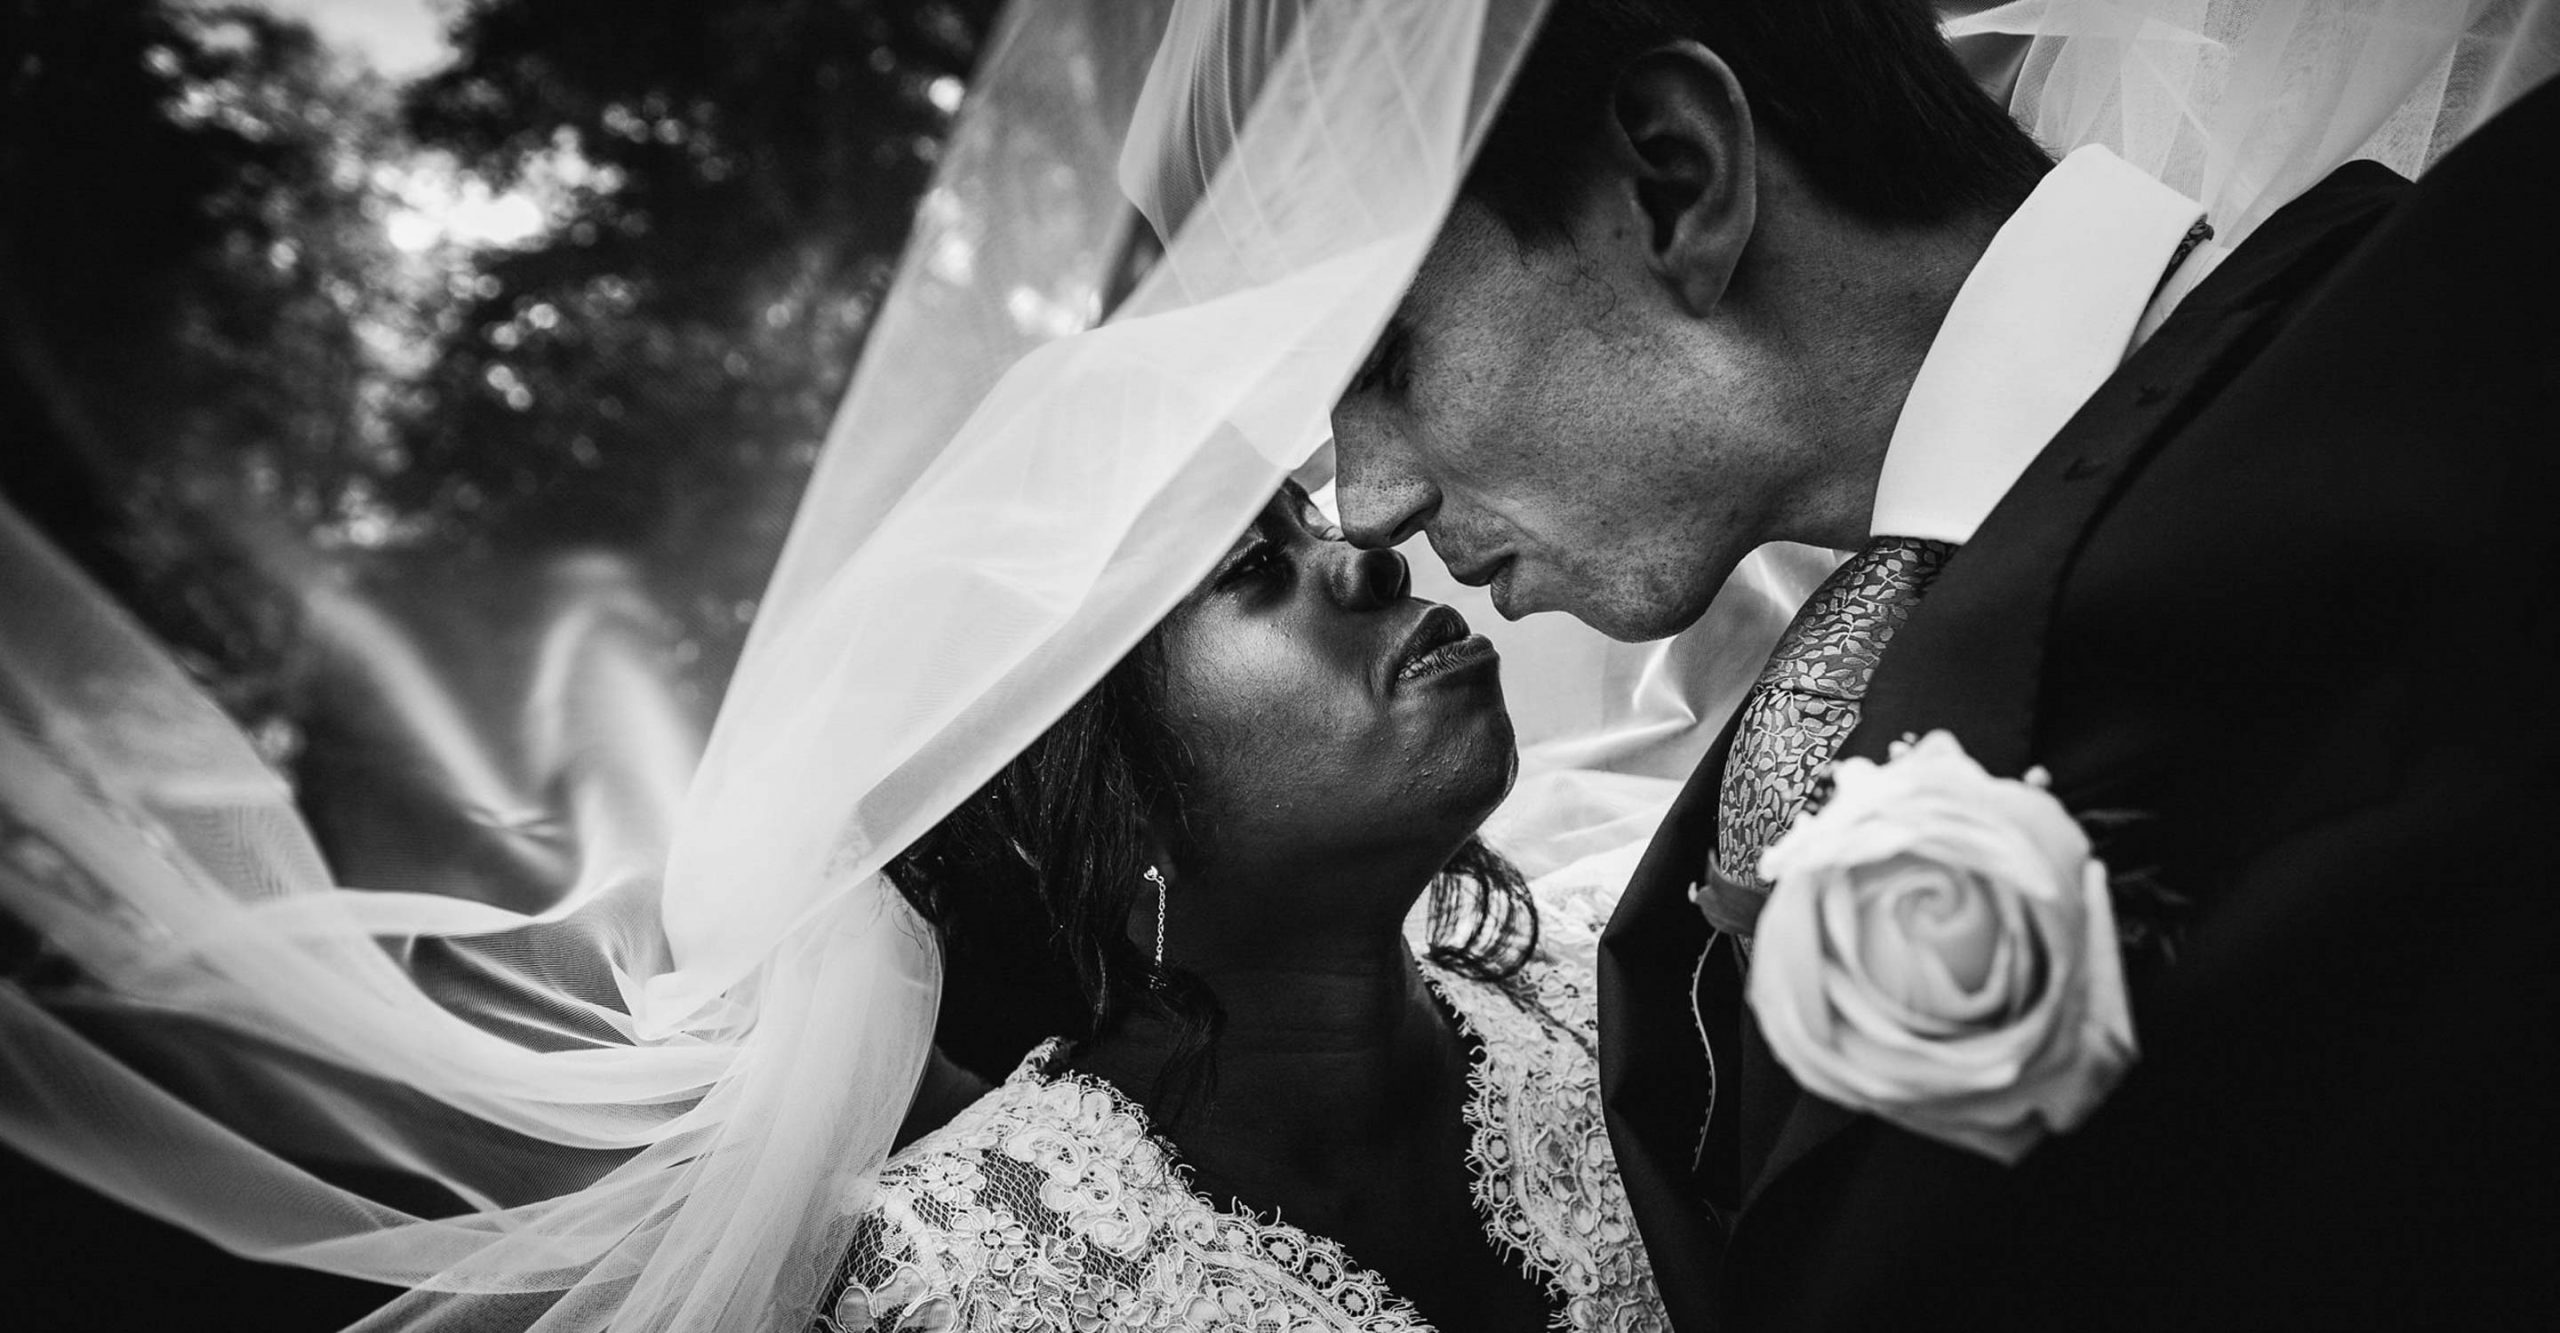 bride & groom under veil, hartnoll hotel wedding photographer in devon